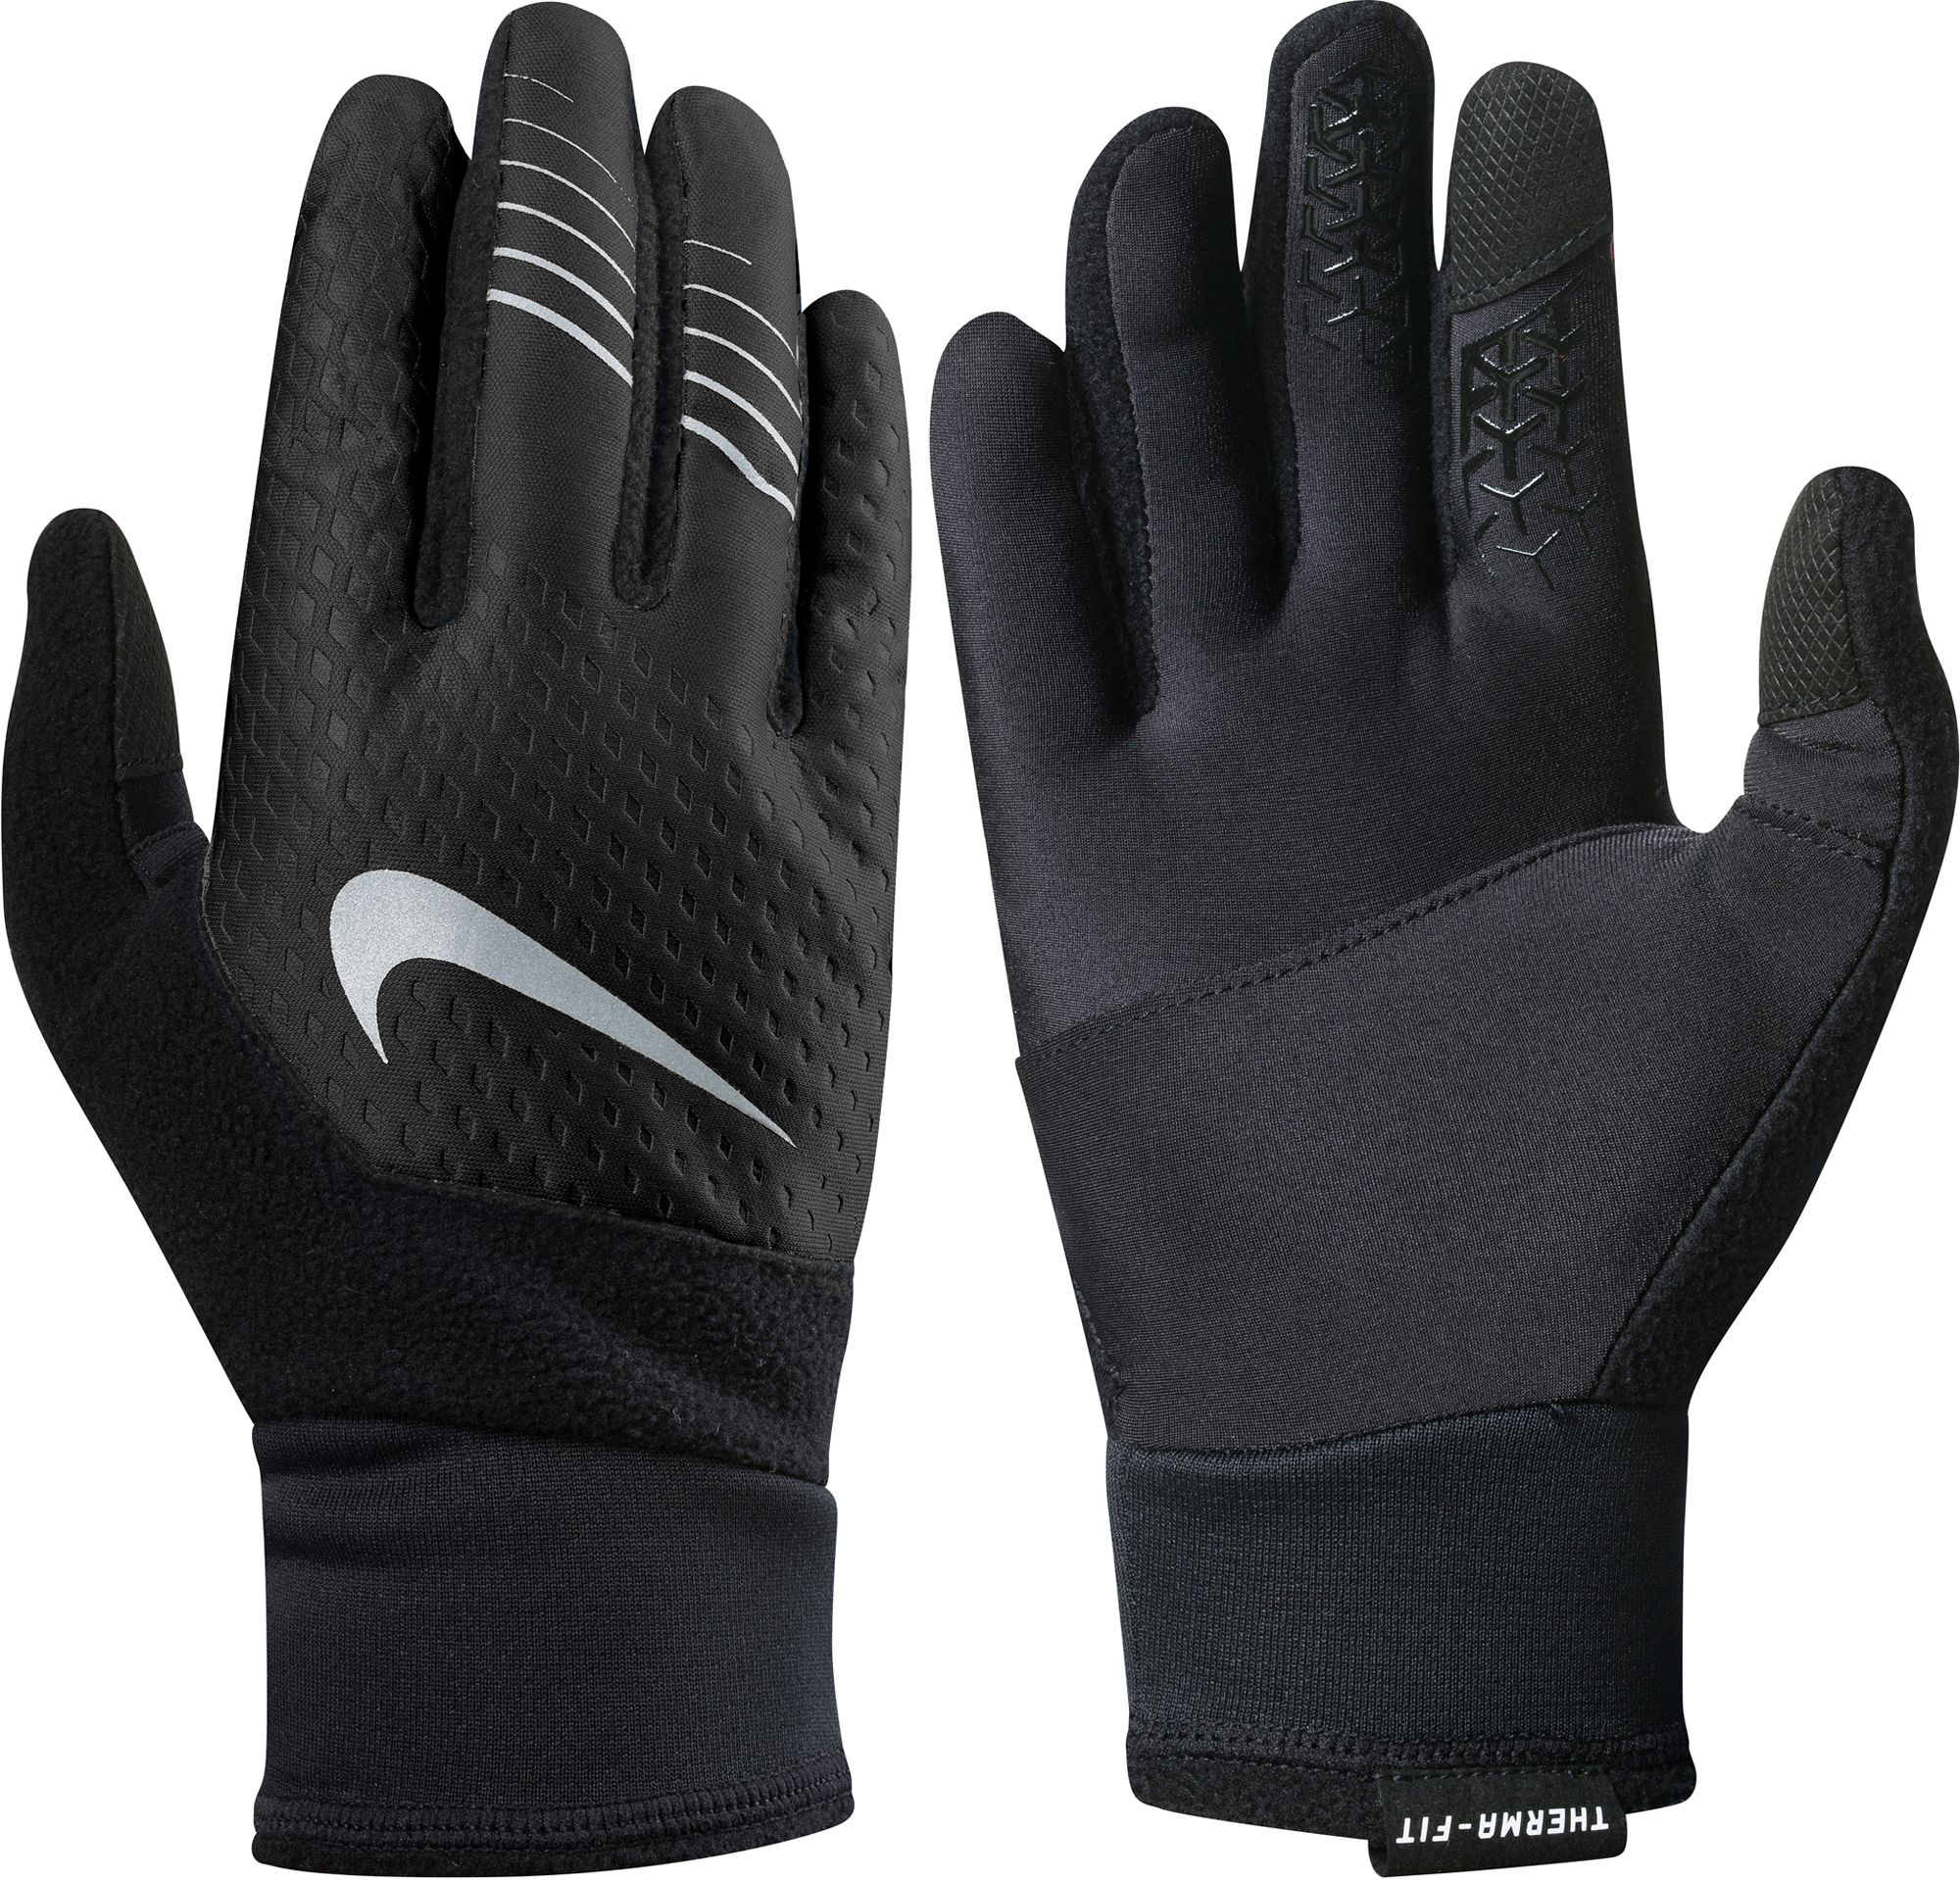 Mens gloves next - Product Image Nike Men S Therma Fit Elite Run Gloves 2 0